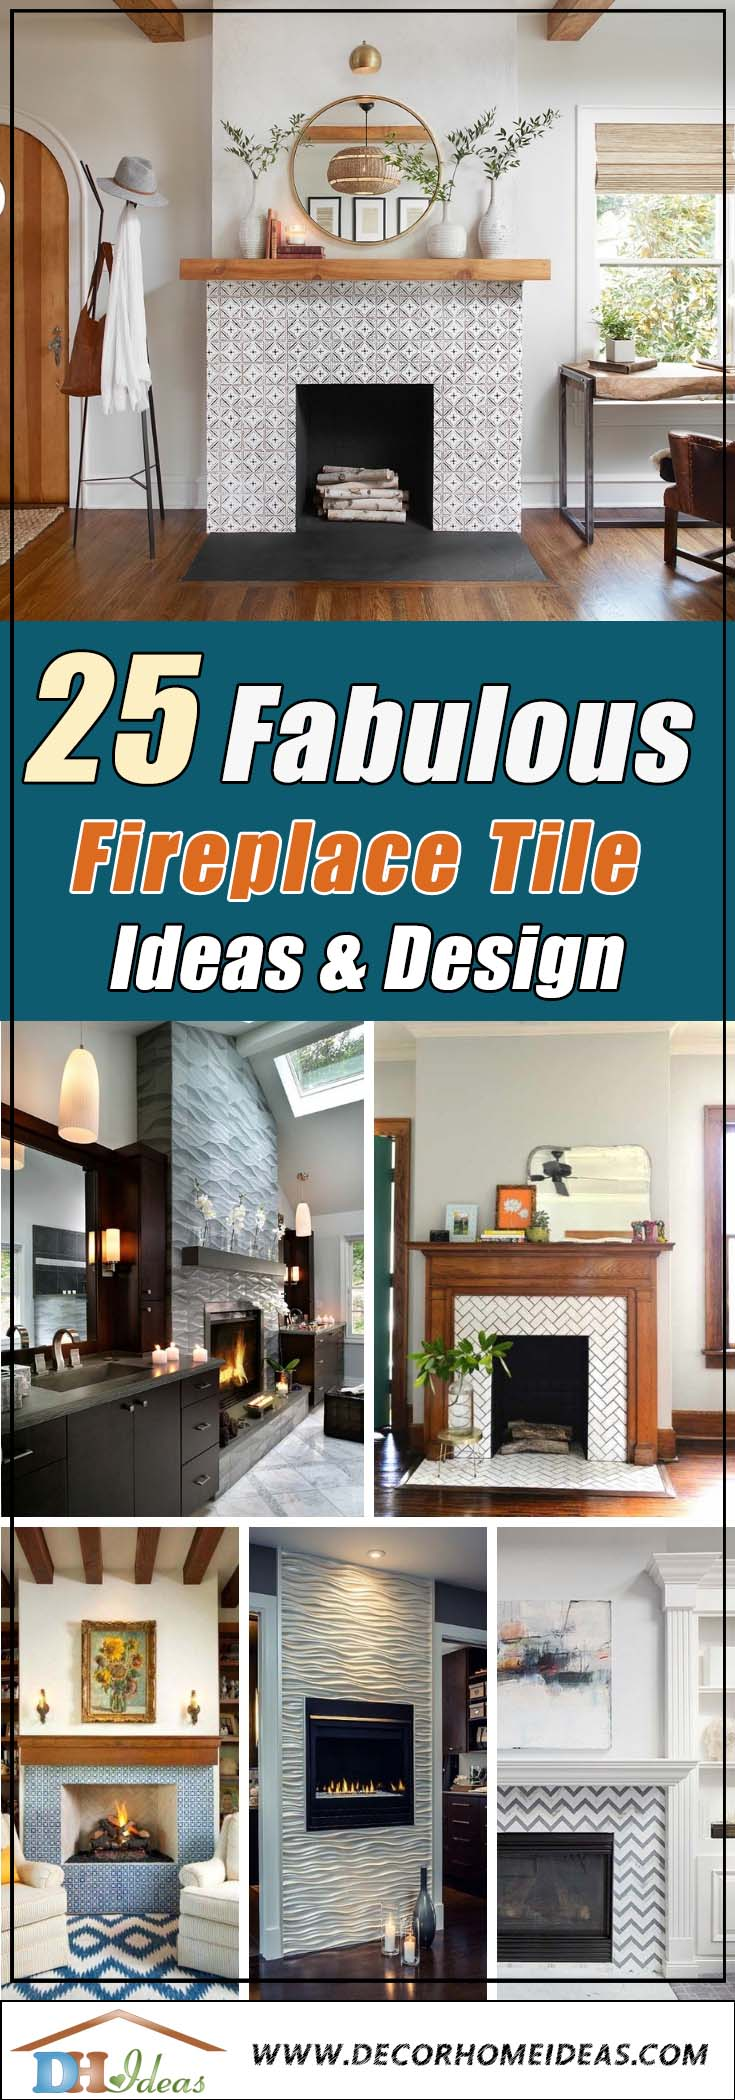 26 best fireplace tile ideas for 2021